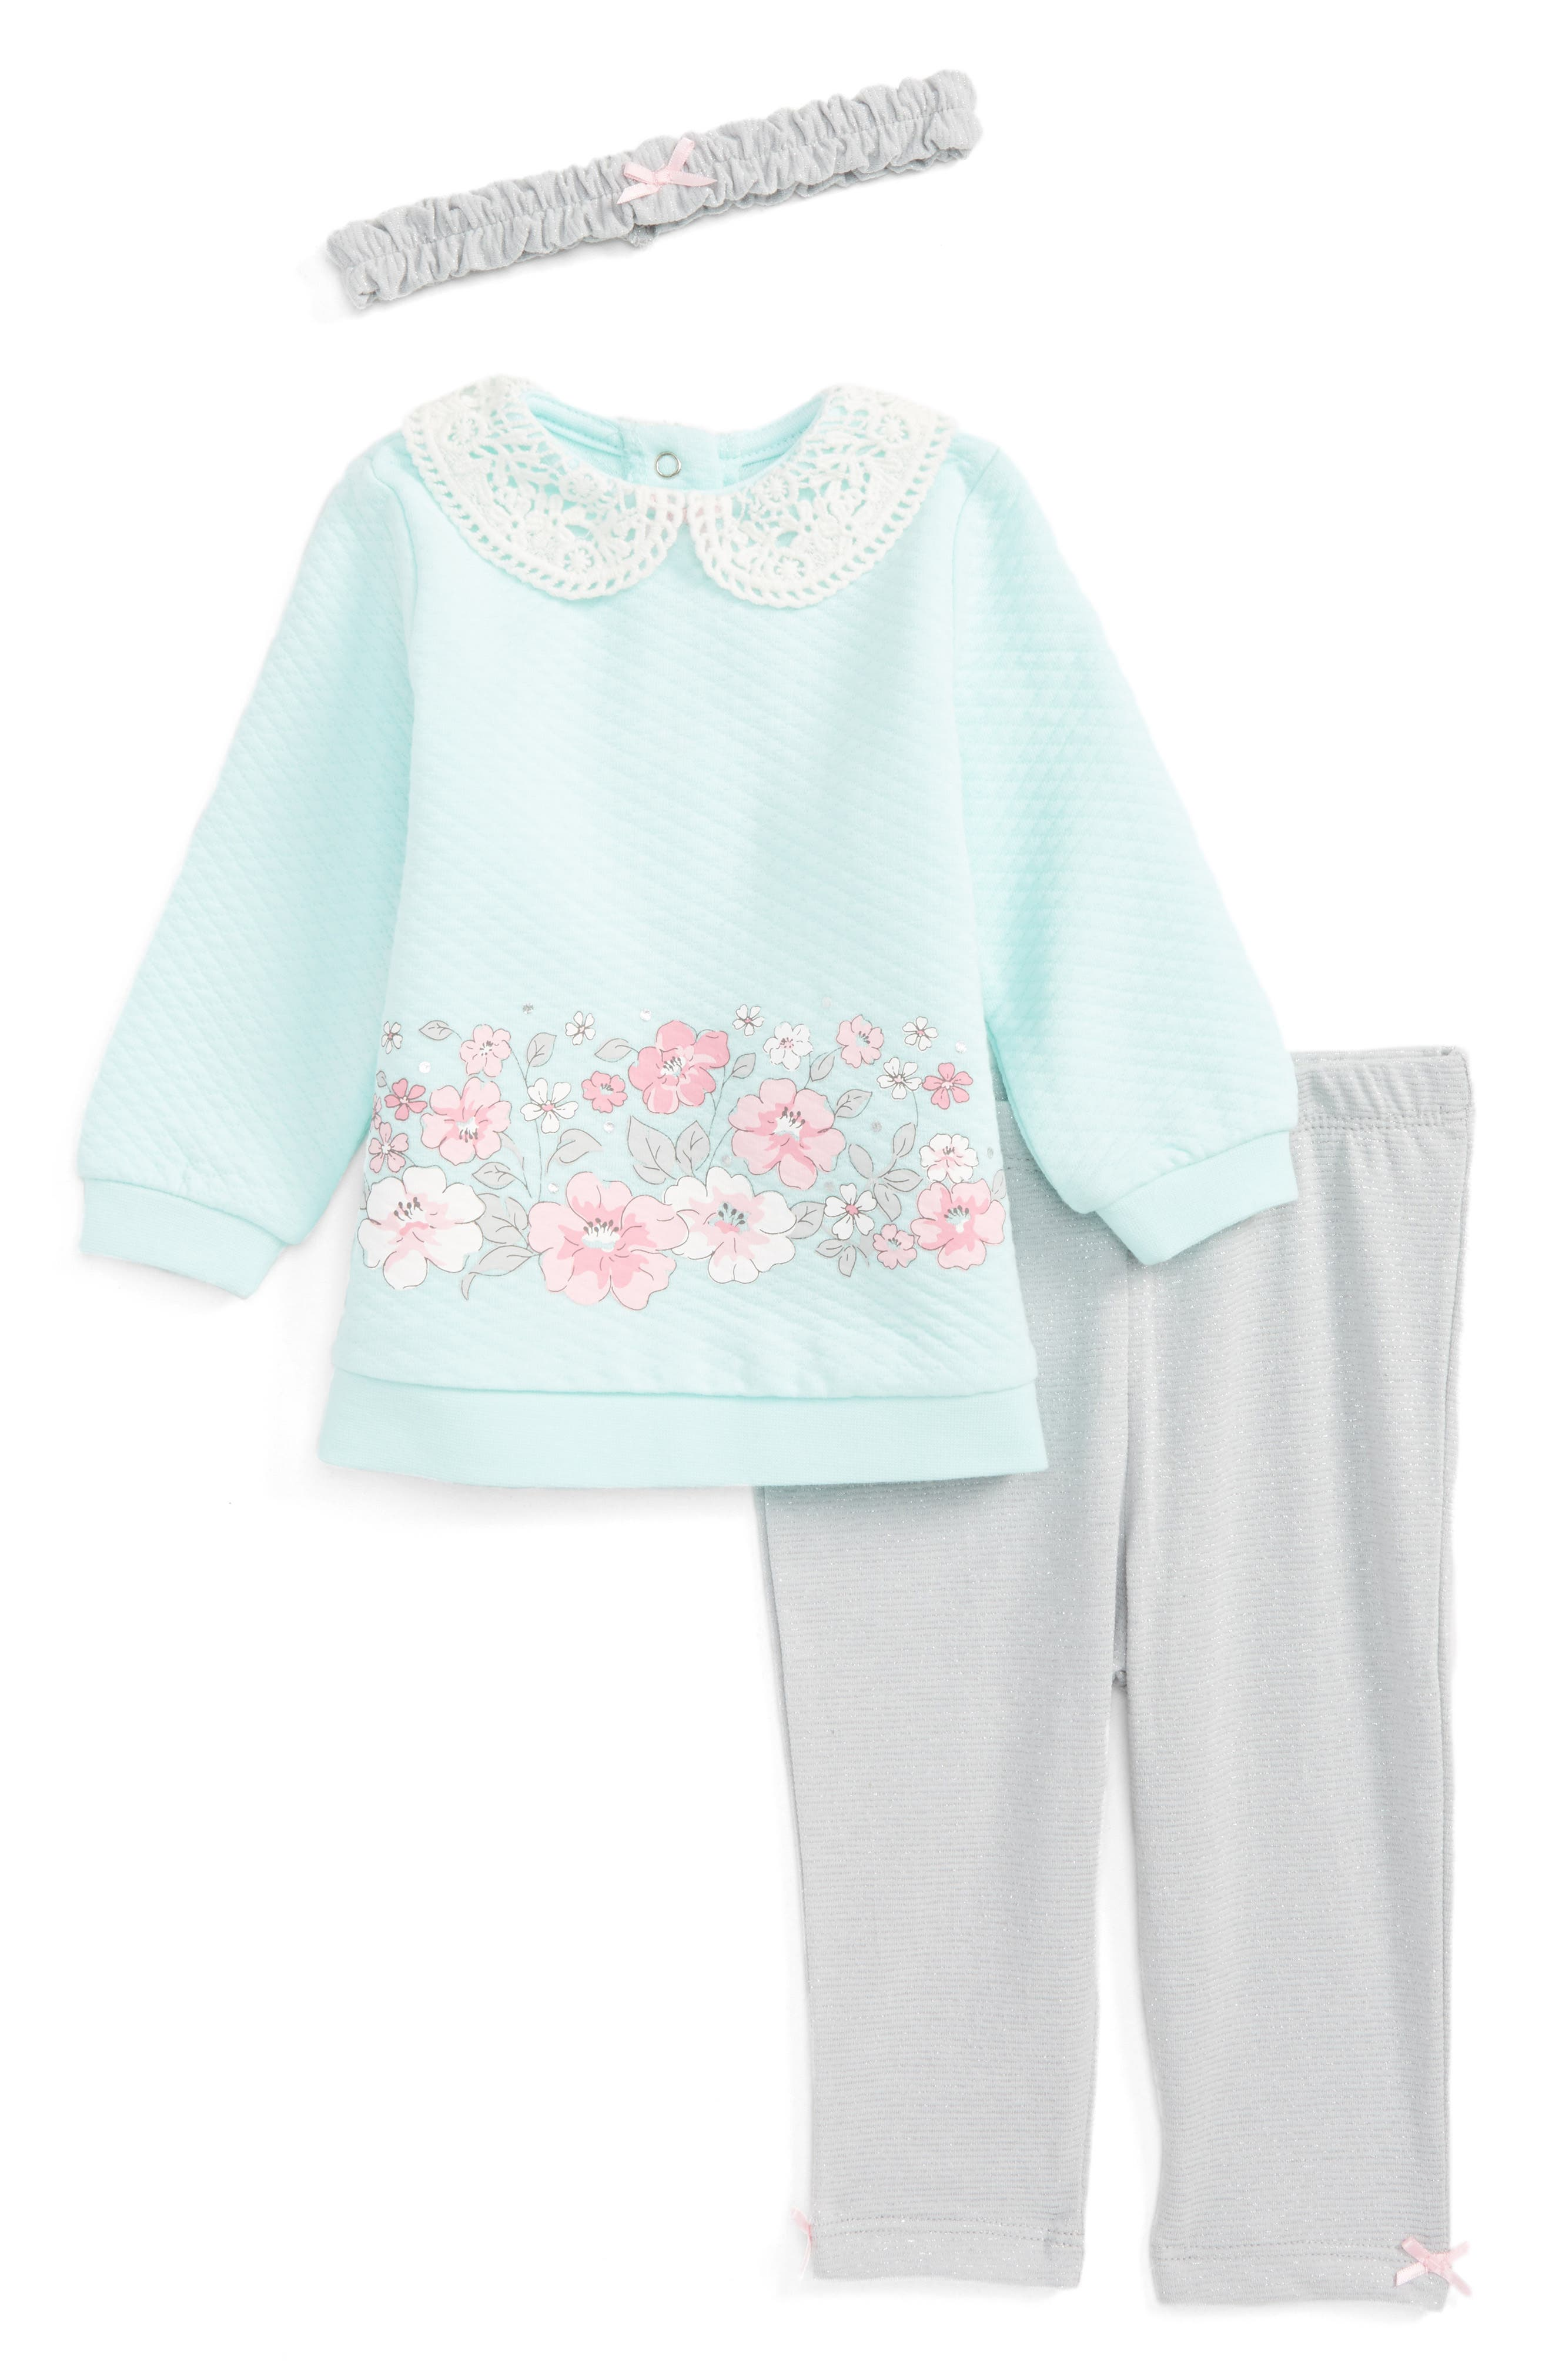 Blossoms Tunic, Leggings & Headband Set,                             Main thumbnail 1, color,                             440